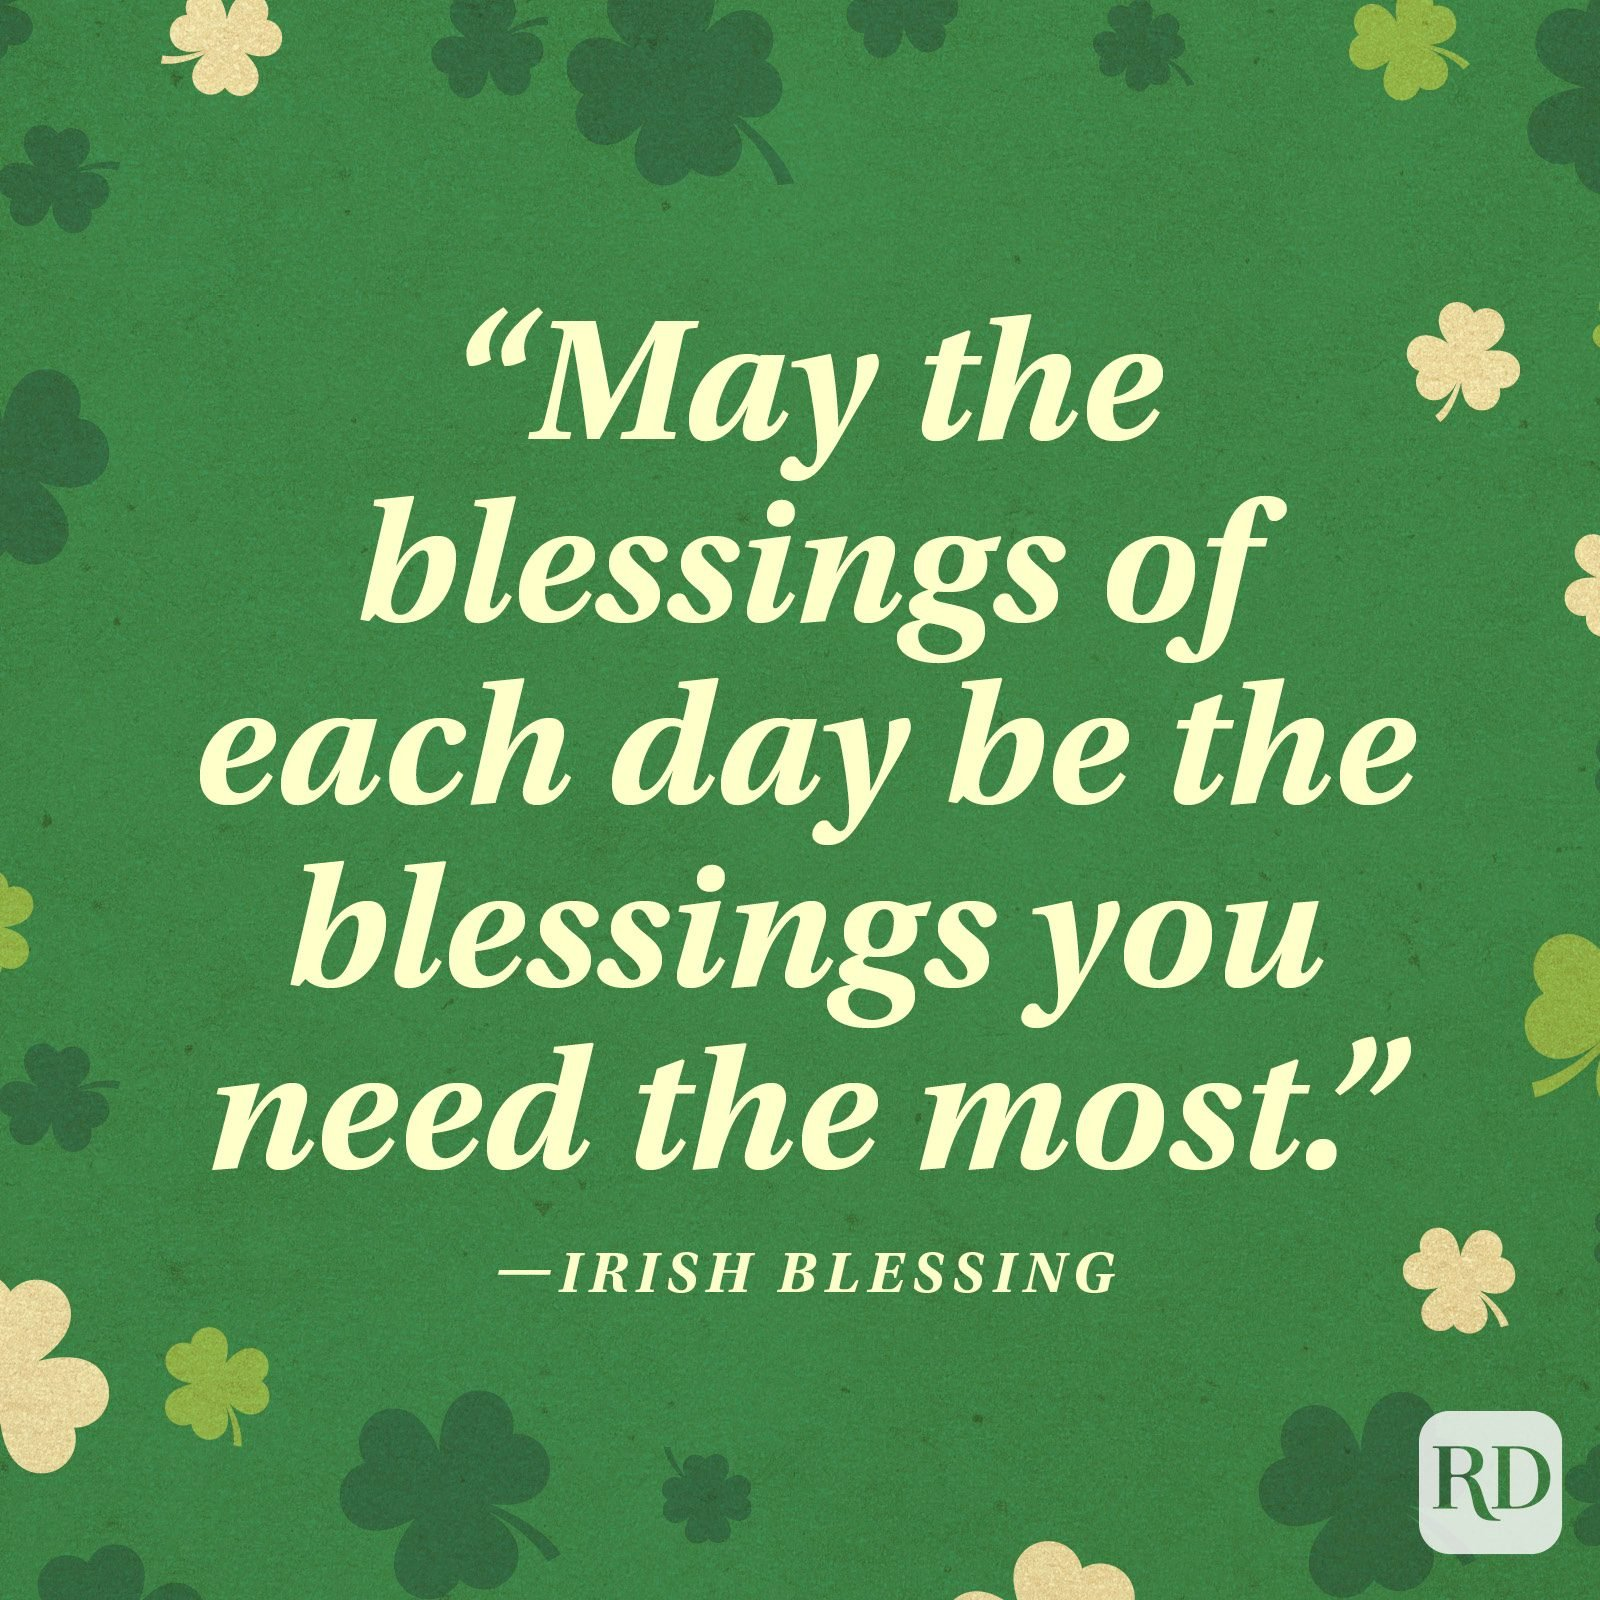 """May the blessings of each day be the blessings you need the most."" —Irish blessing"